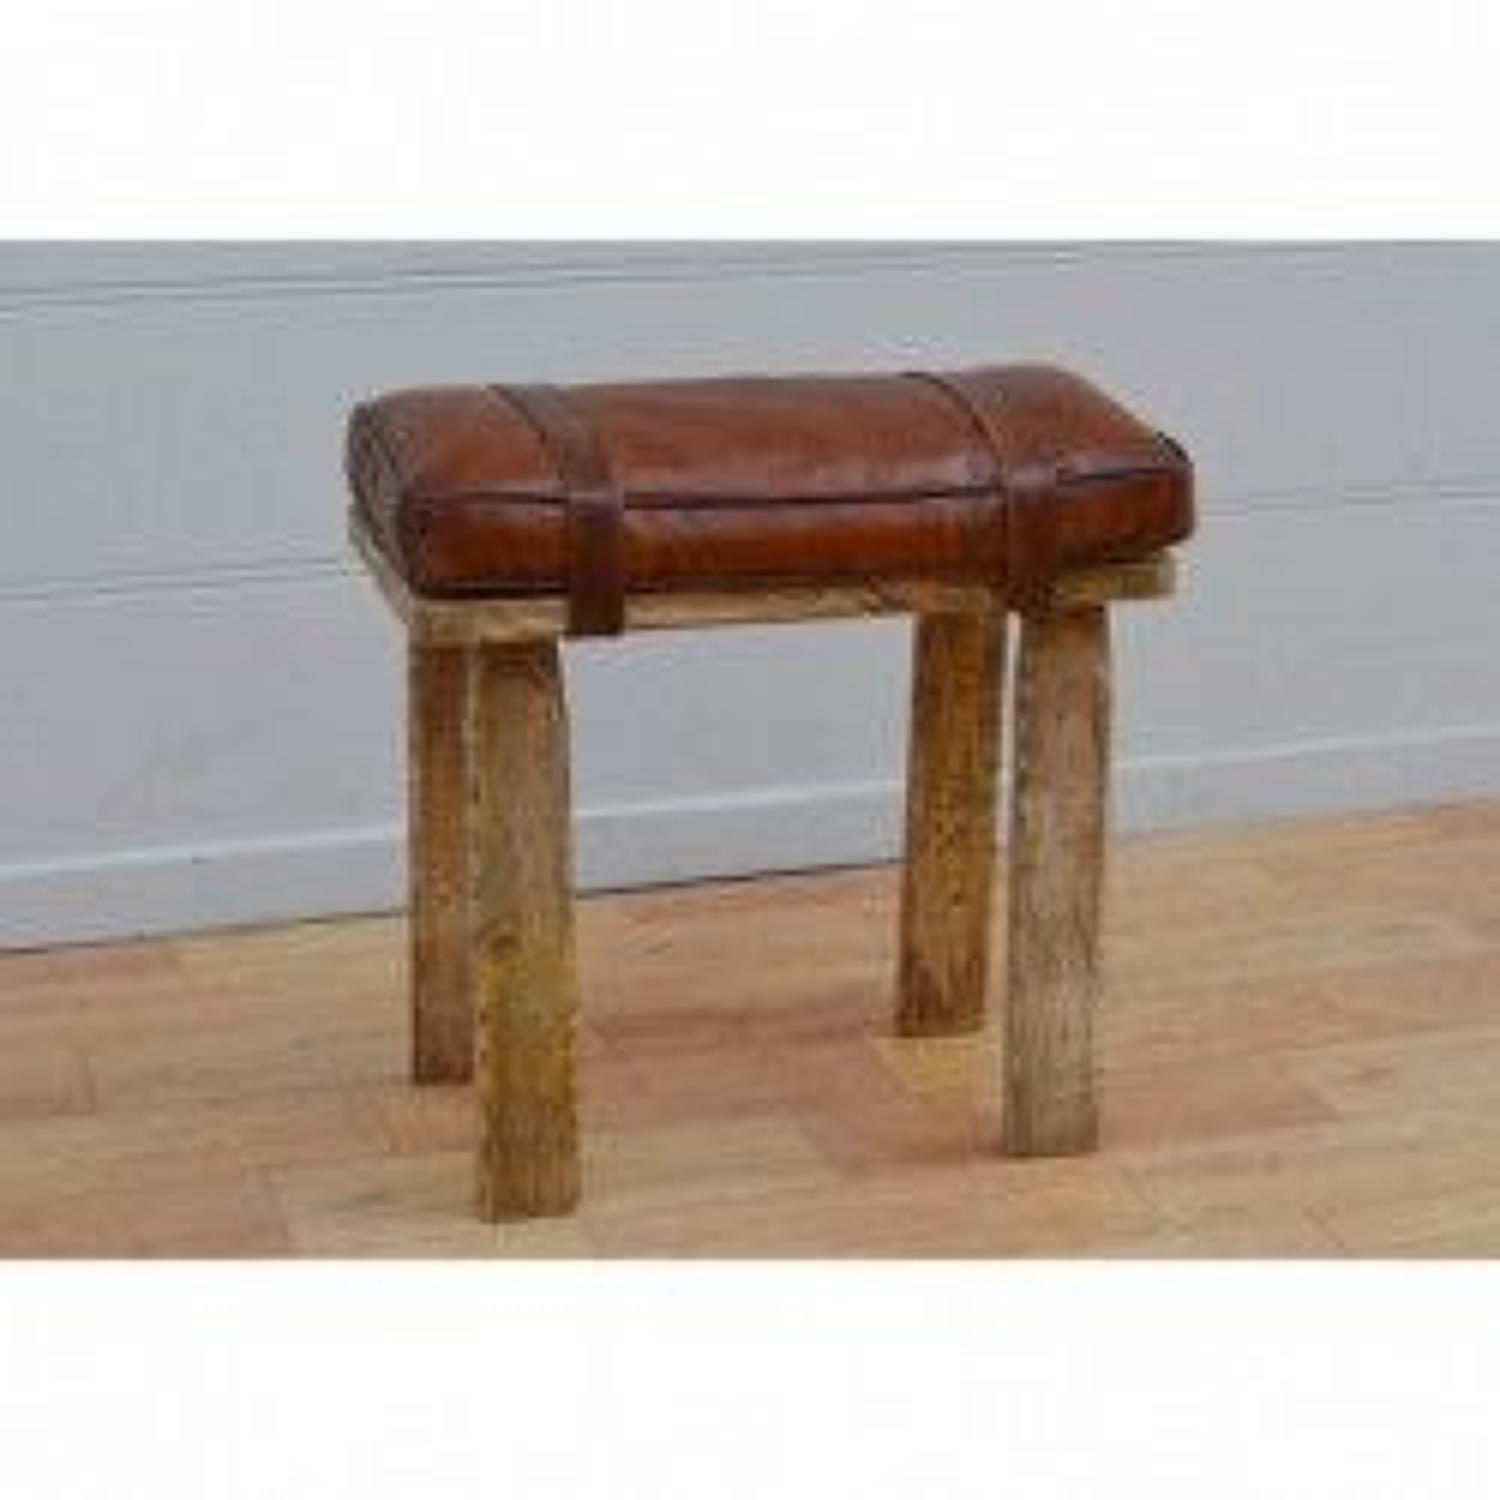 Wooden stool/Bench with leather cushioned seat